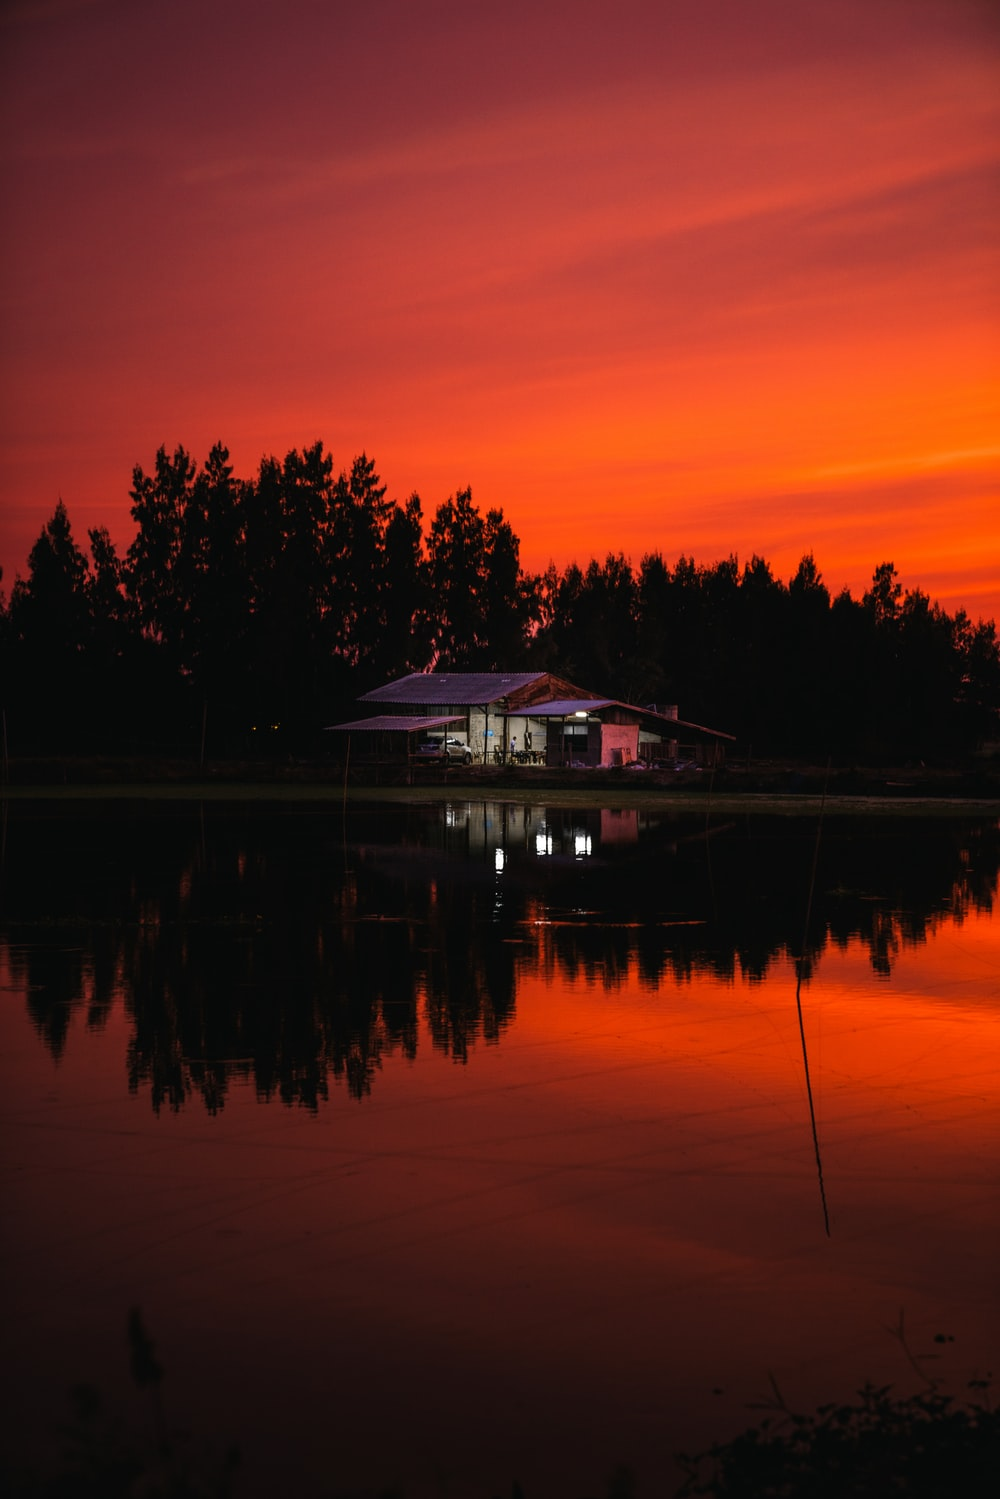 silhouette of house near body of water during sunset